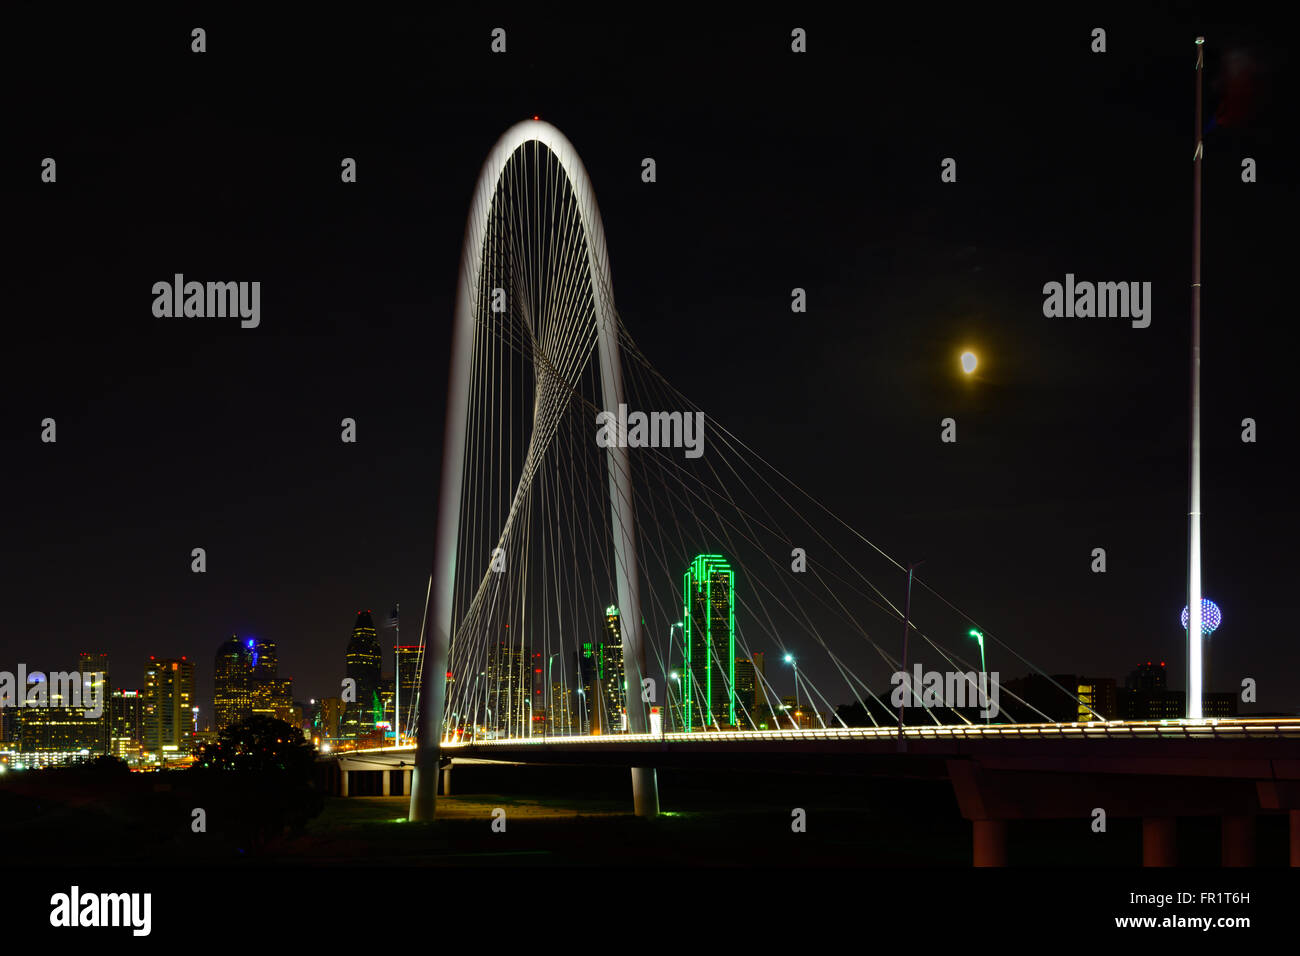 Dallas, Texas Skyline Nightscape with bridge in the foreground and moon in sky. Margaret Hunt Hill Bridge Showcases - Stock Image